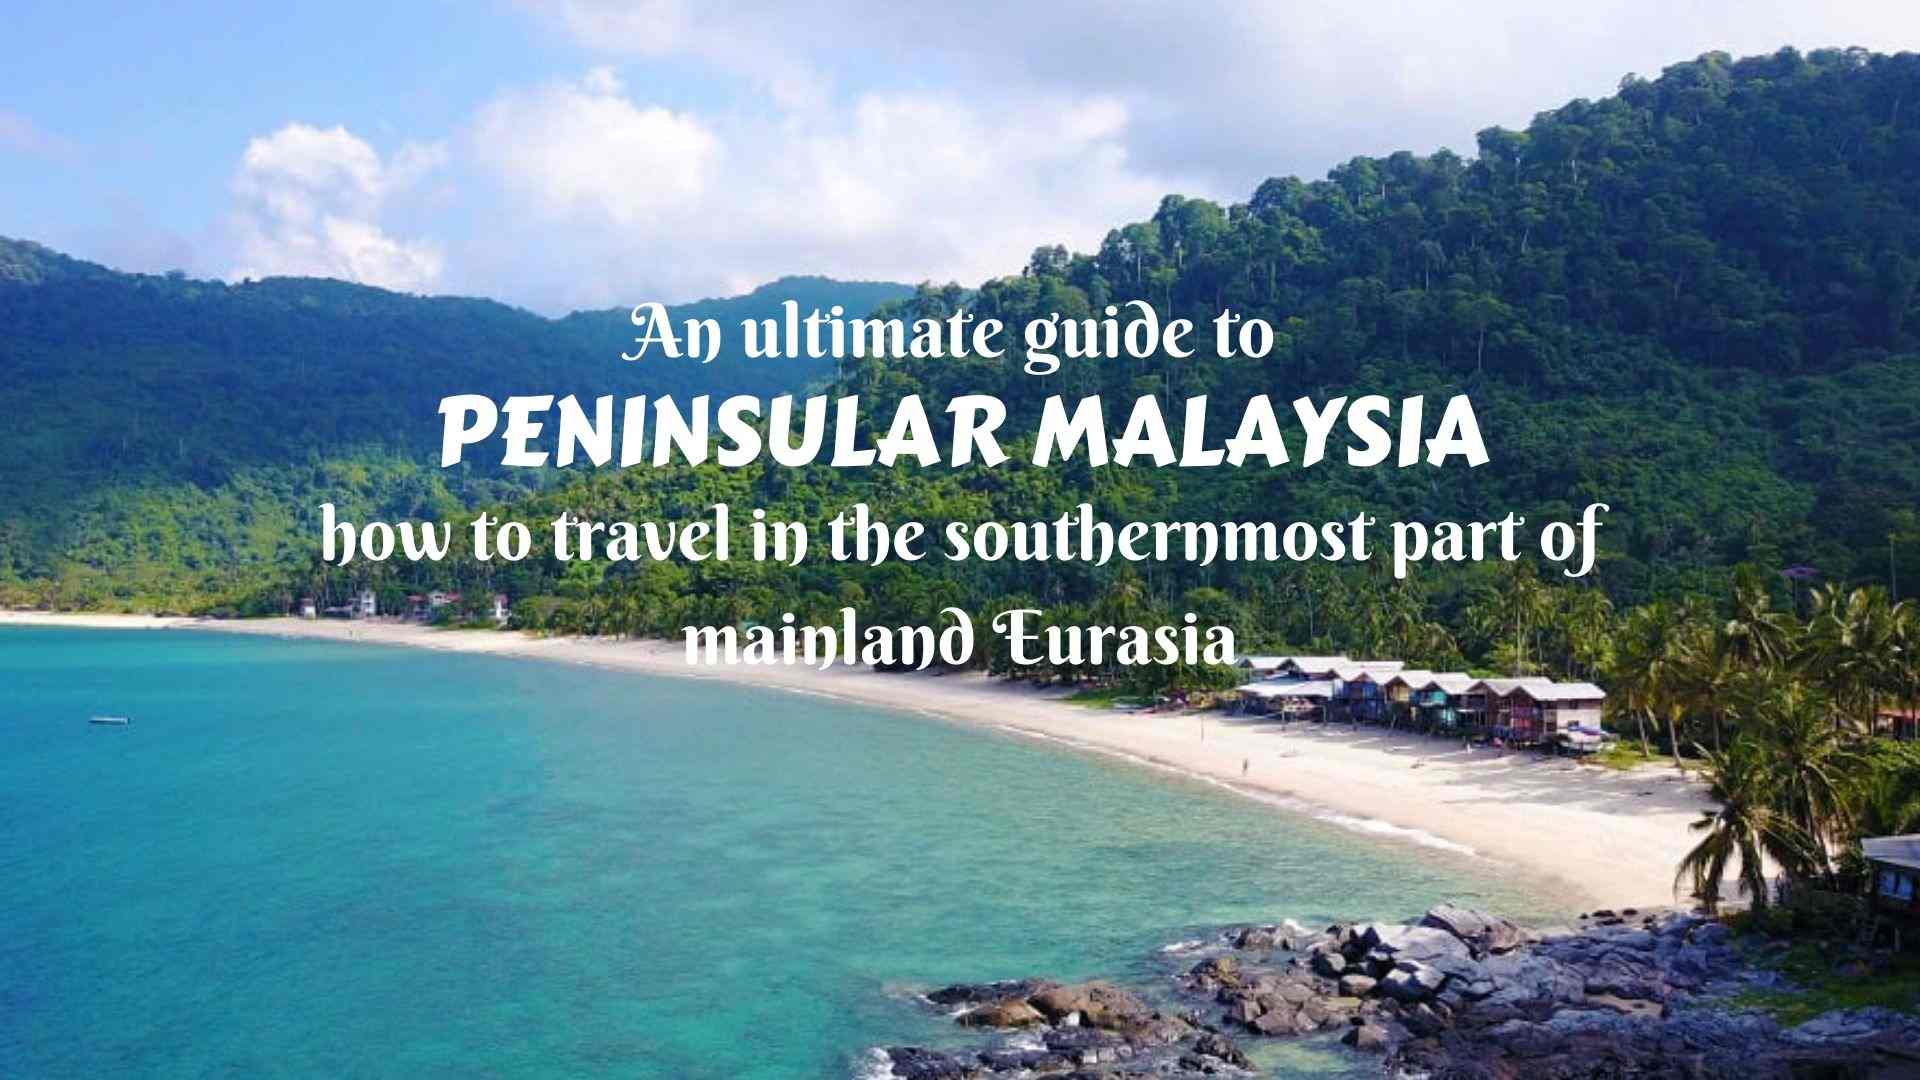 An ultimate guide to Peninsular Malaysia- how to travel in the southernmost part of mainland Eurasia